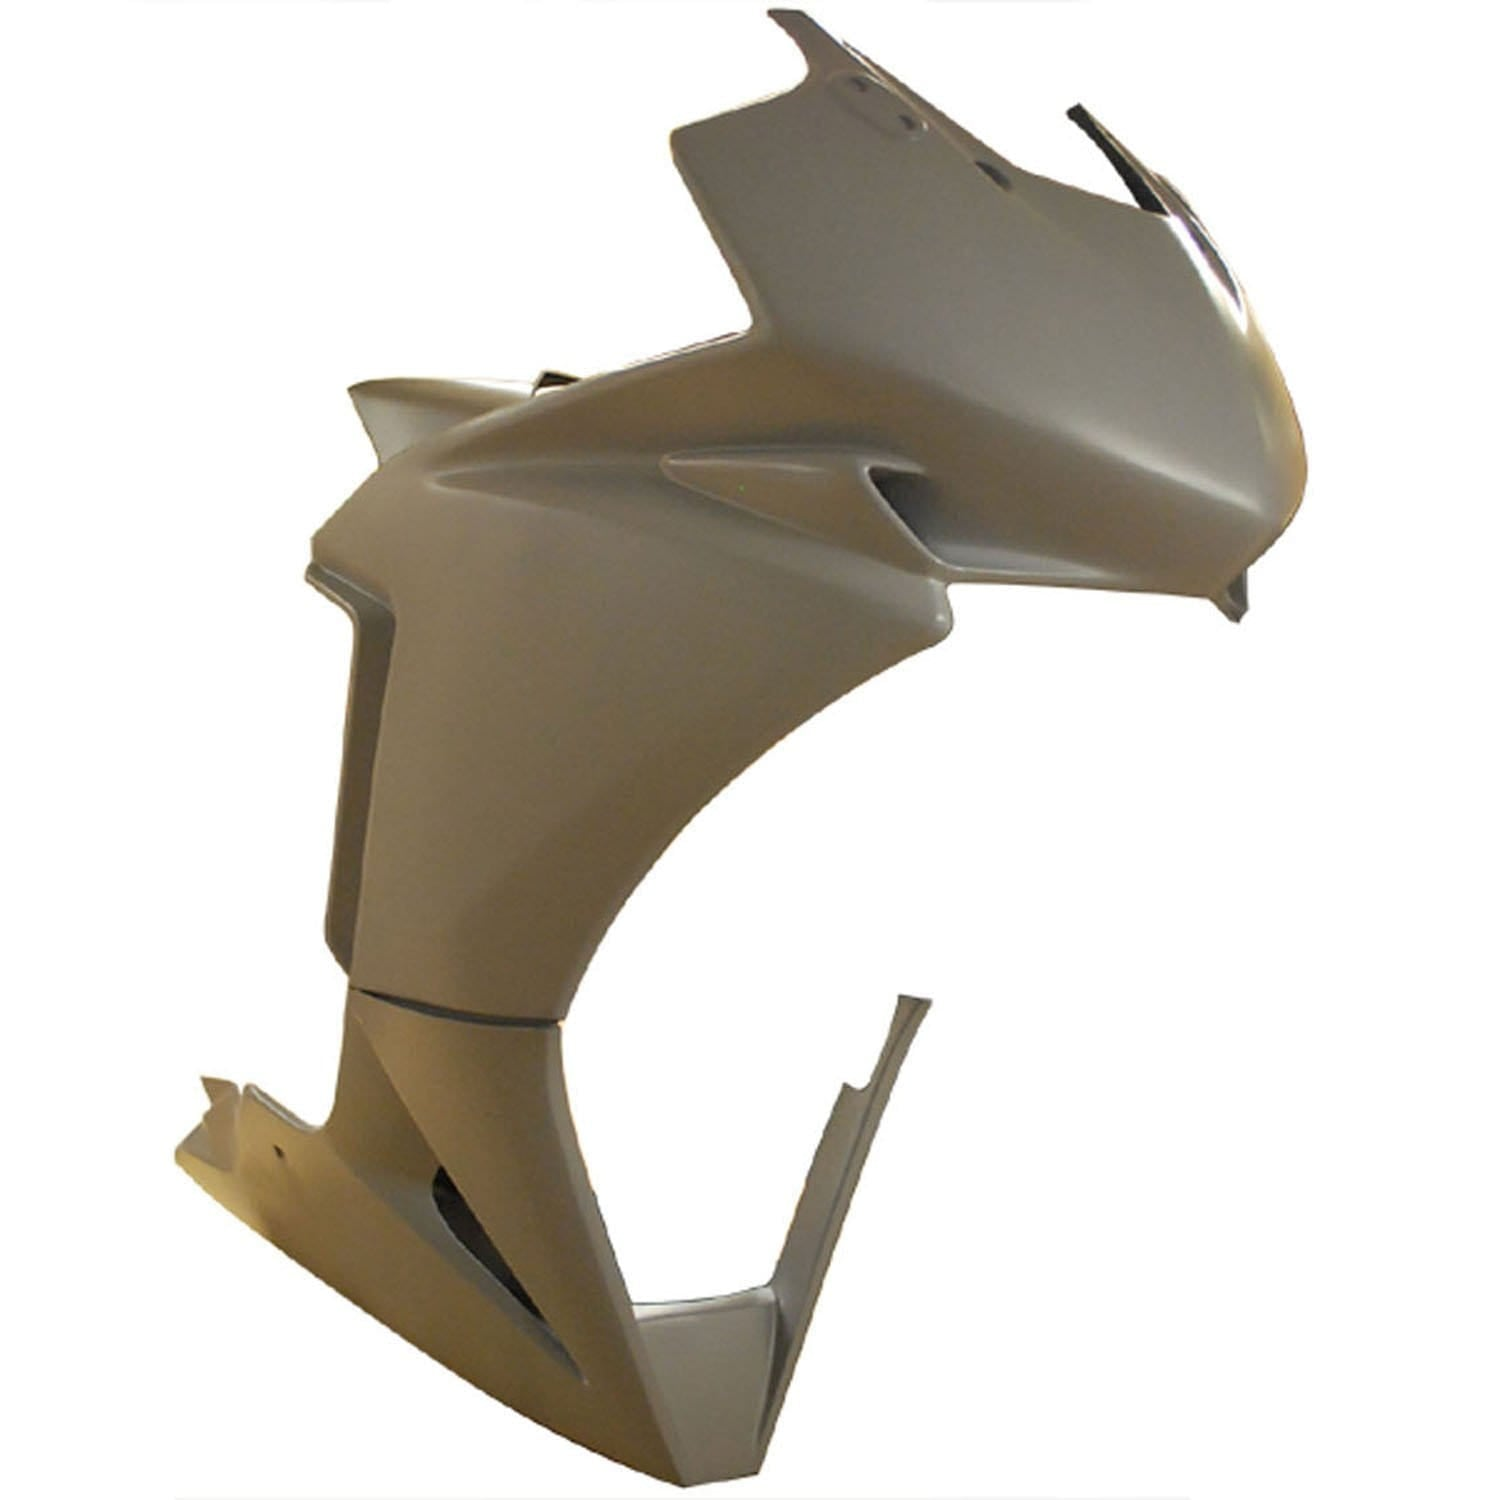 Honda CBR500R 2013-2014 Upper Fairing - Pro Series - Woodcraft Technologies - Motorcycle Parts